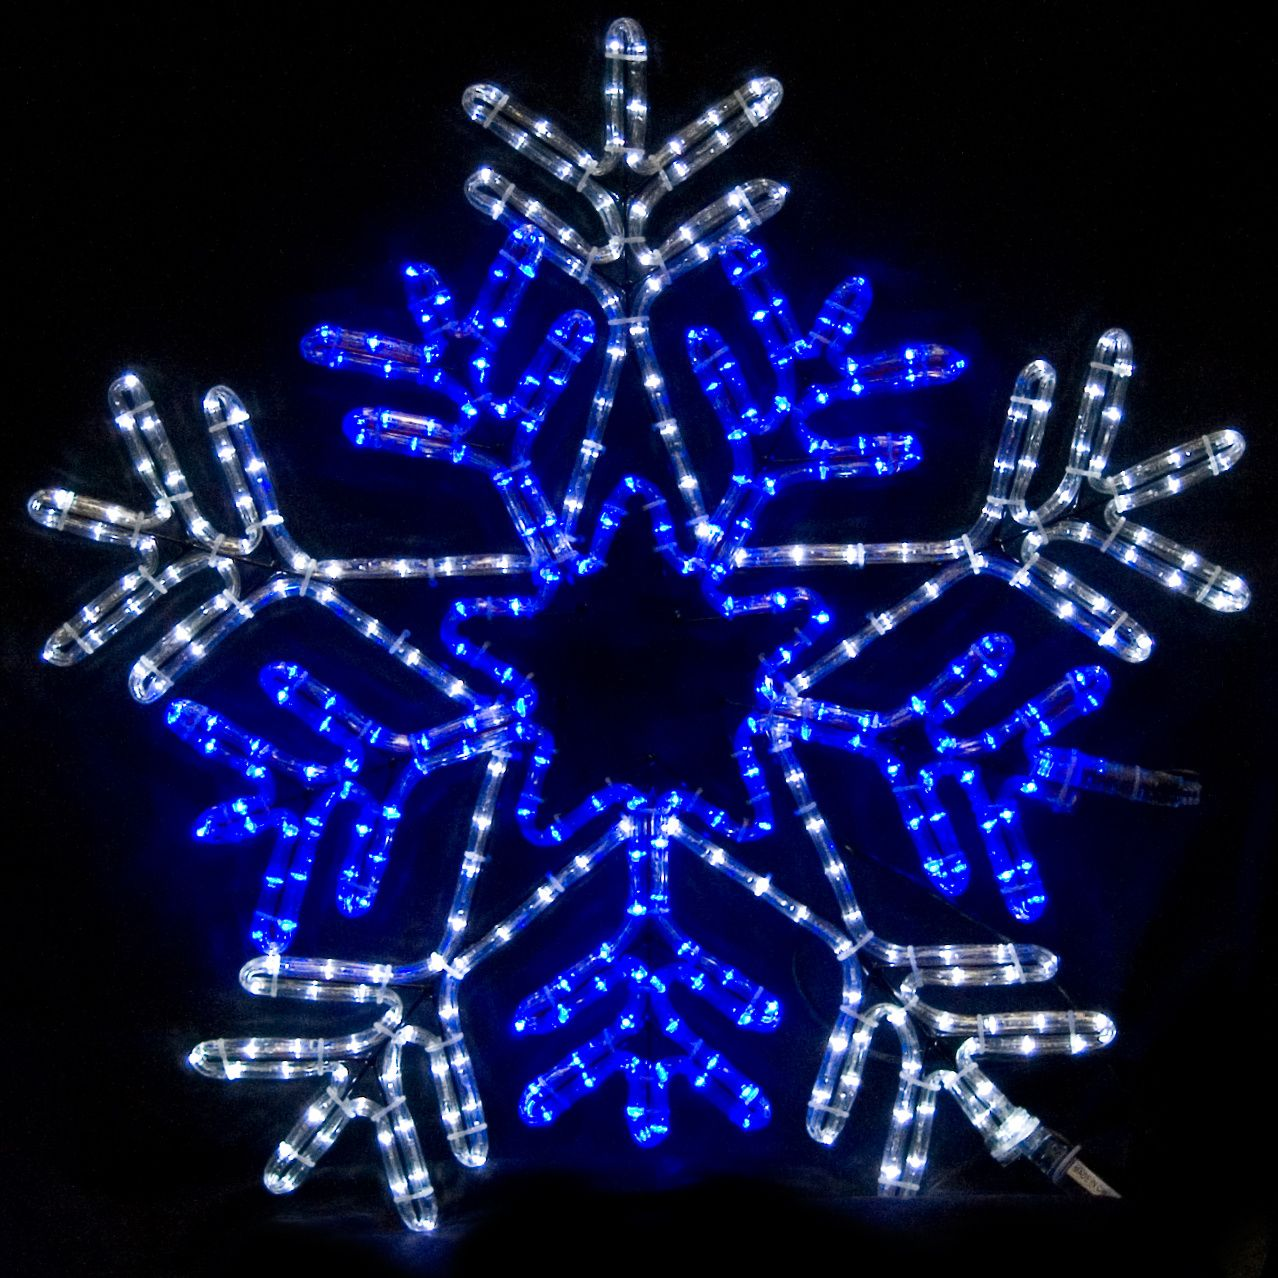 Brightly Lit Christmas Decorations Including This 26 Inch Snowflake With  Blue Center.